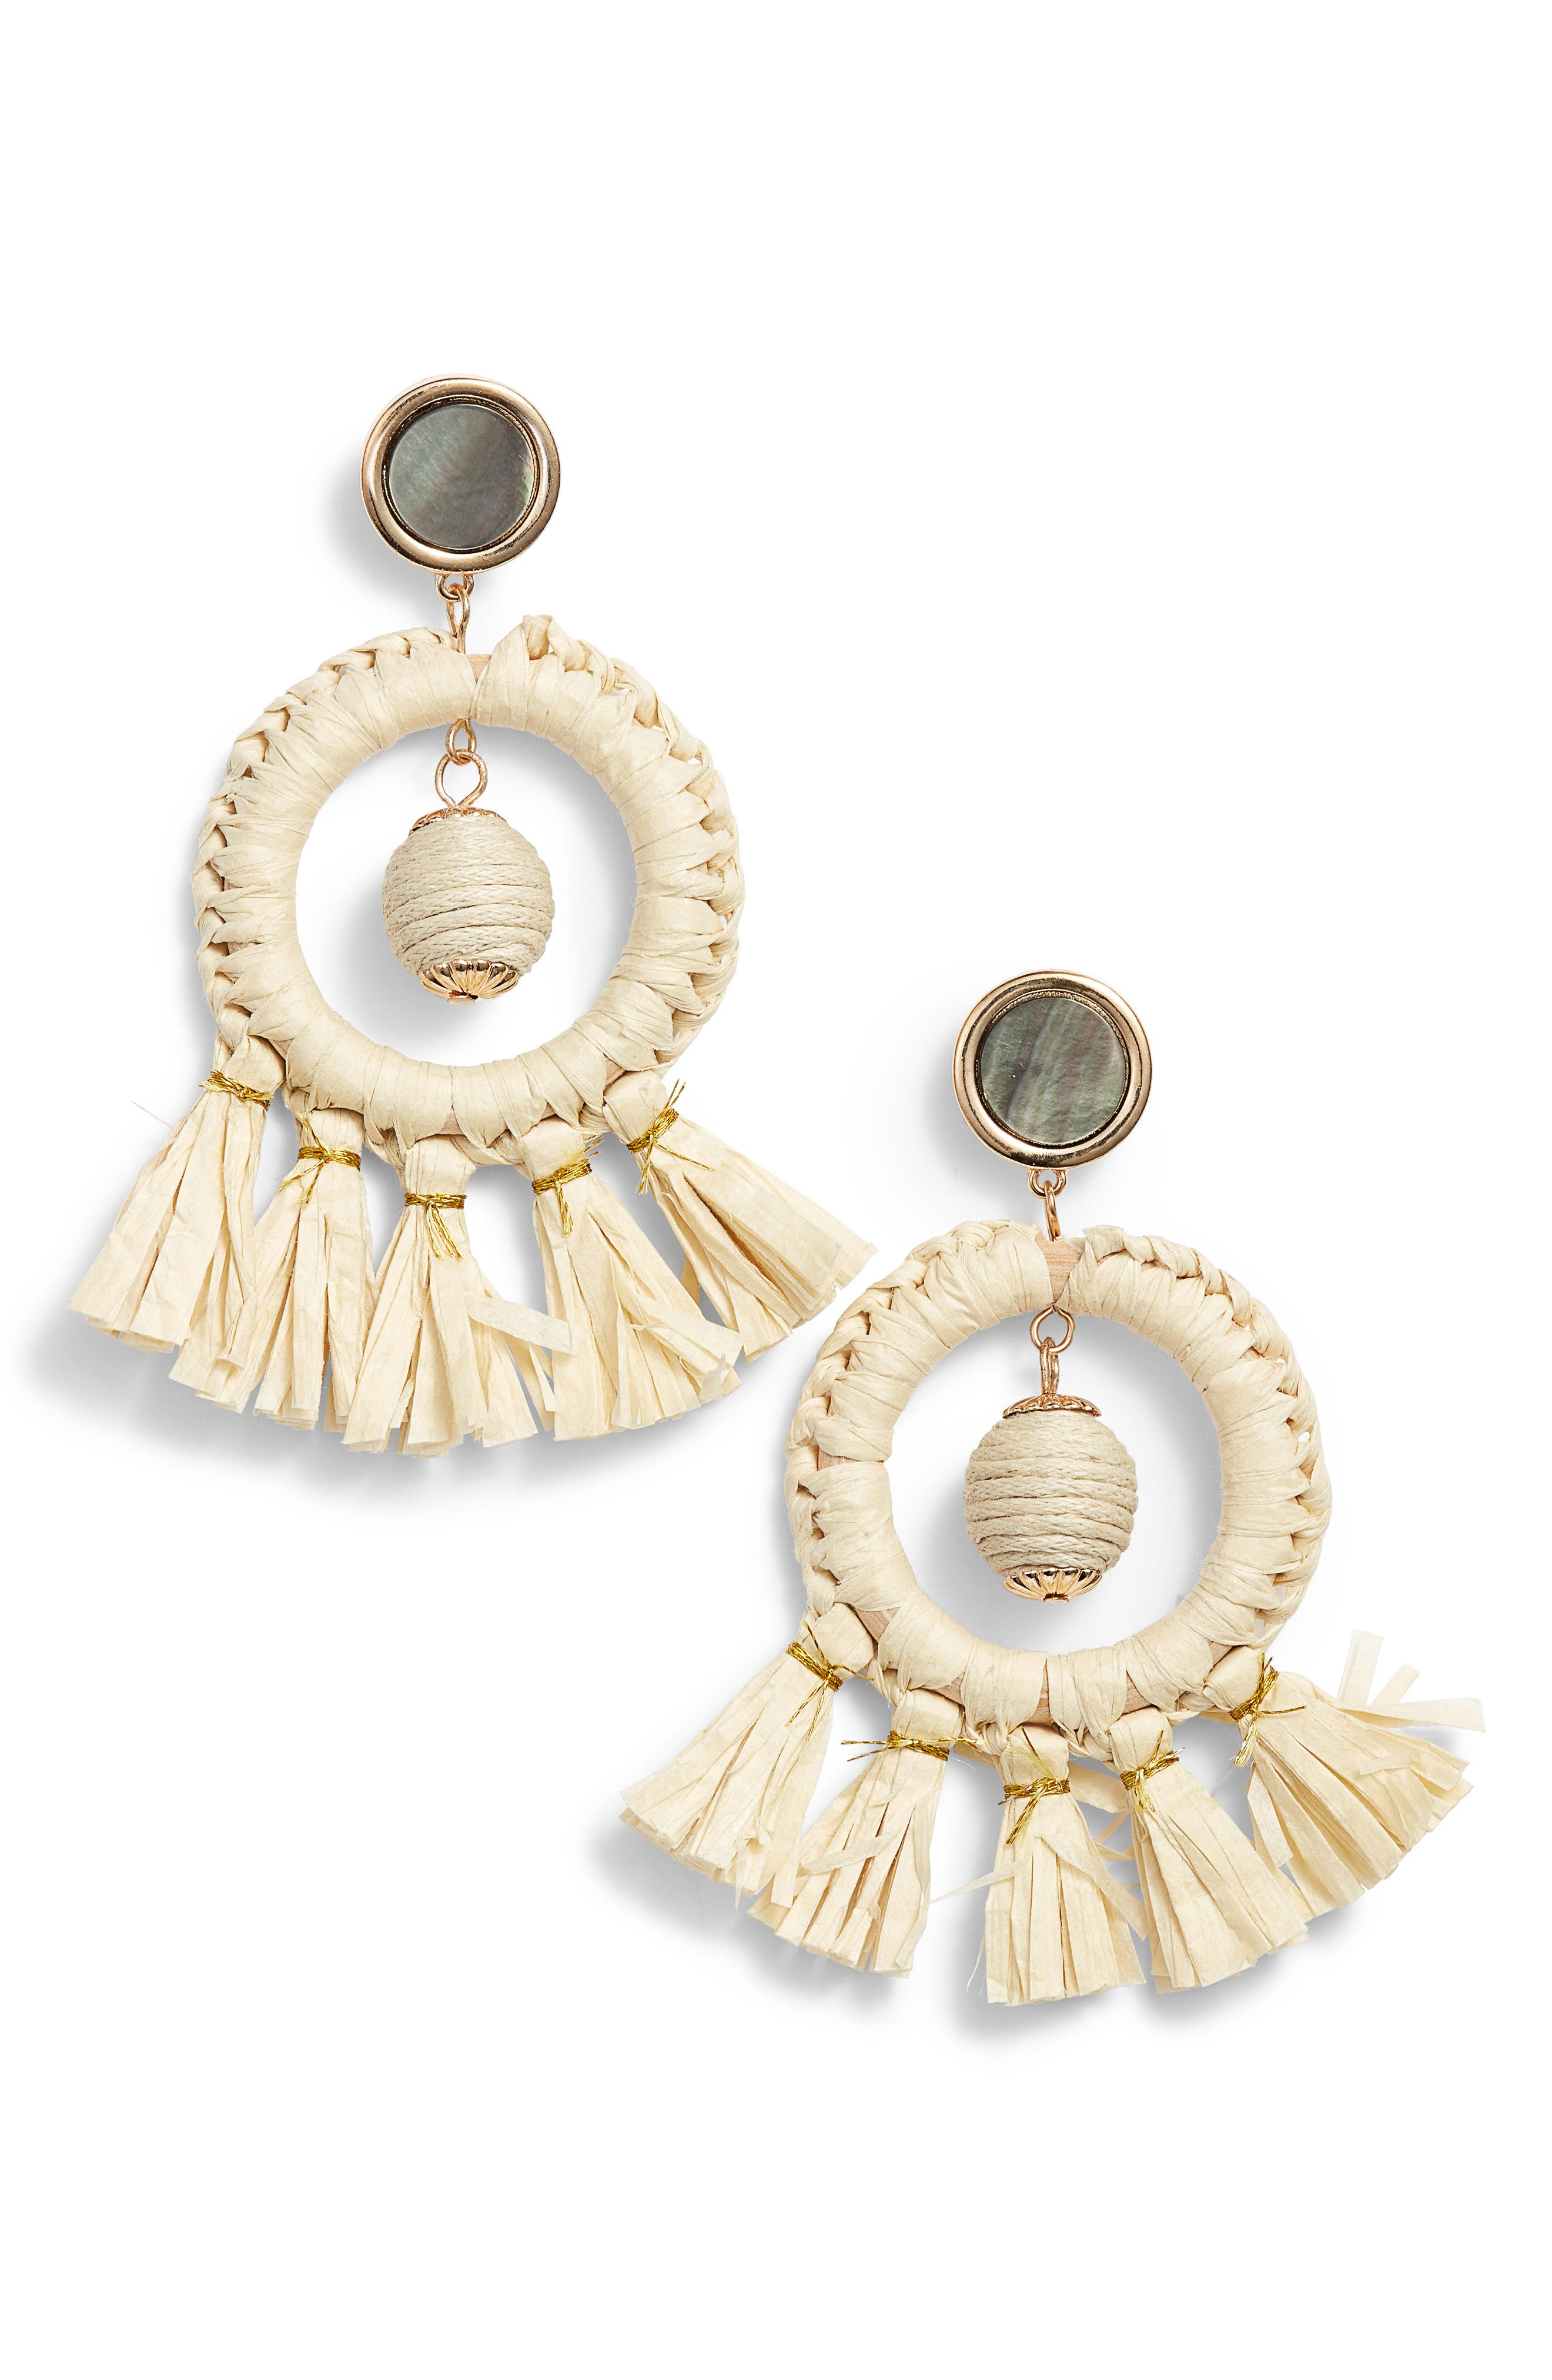 Shell & Straw Drop Earrings,                         Main,                         color, Natural